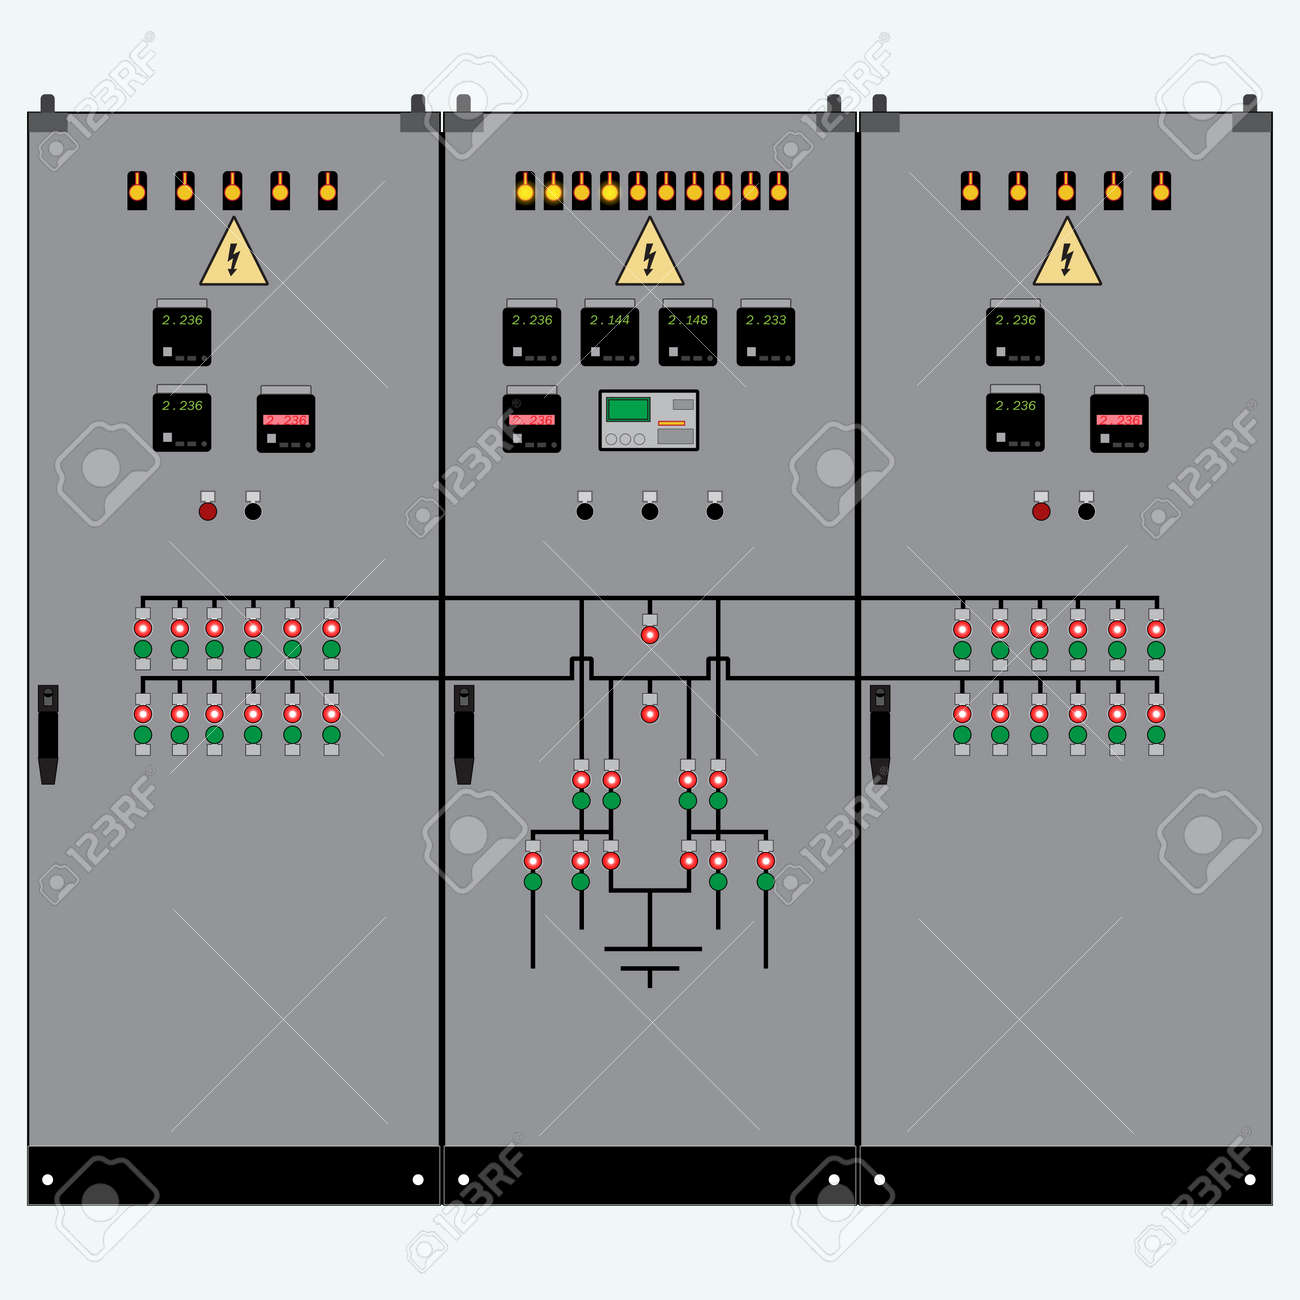 Picture of the electrical panel, electric meter and circuit breakers,high-voltage transformer - 51443545